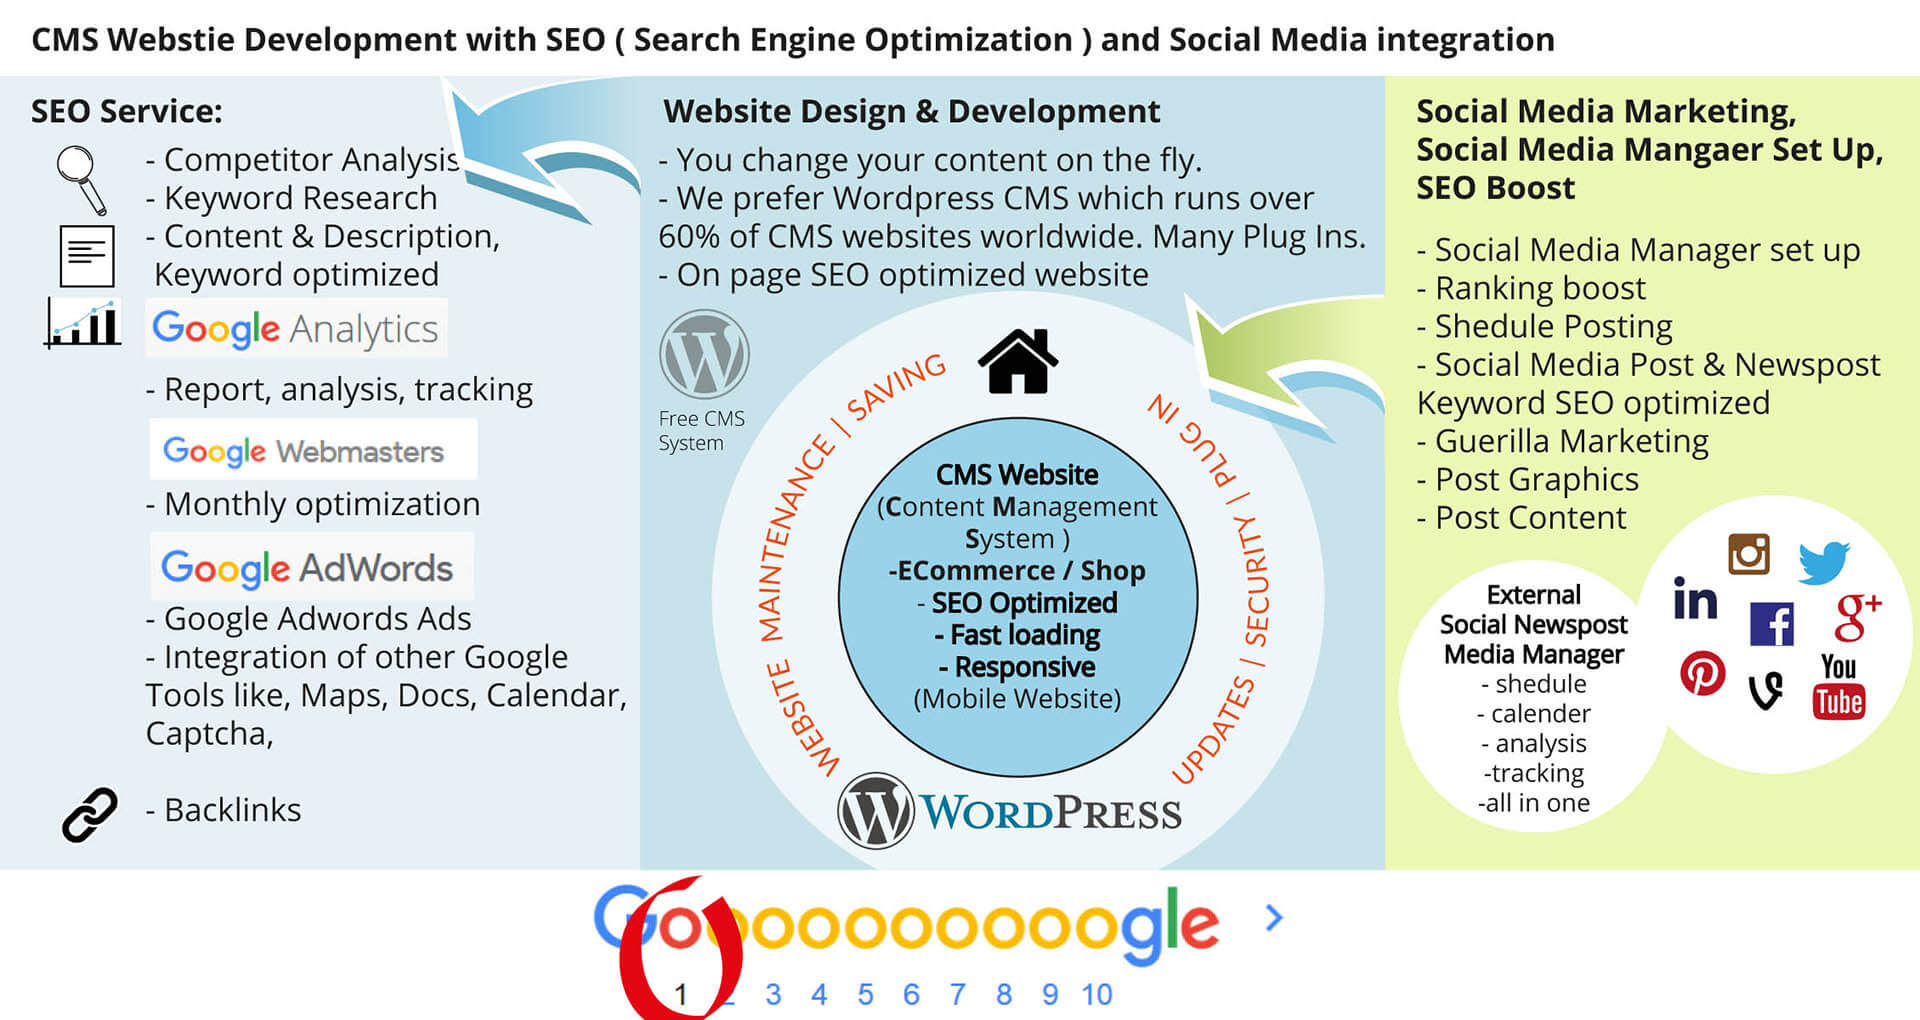 webdesign seo search engine optimization google internet marketing 1